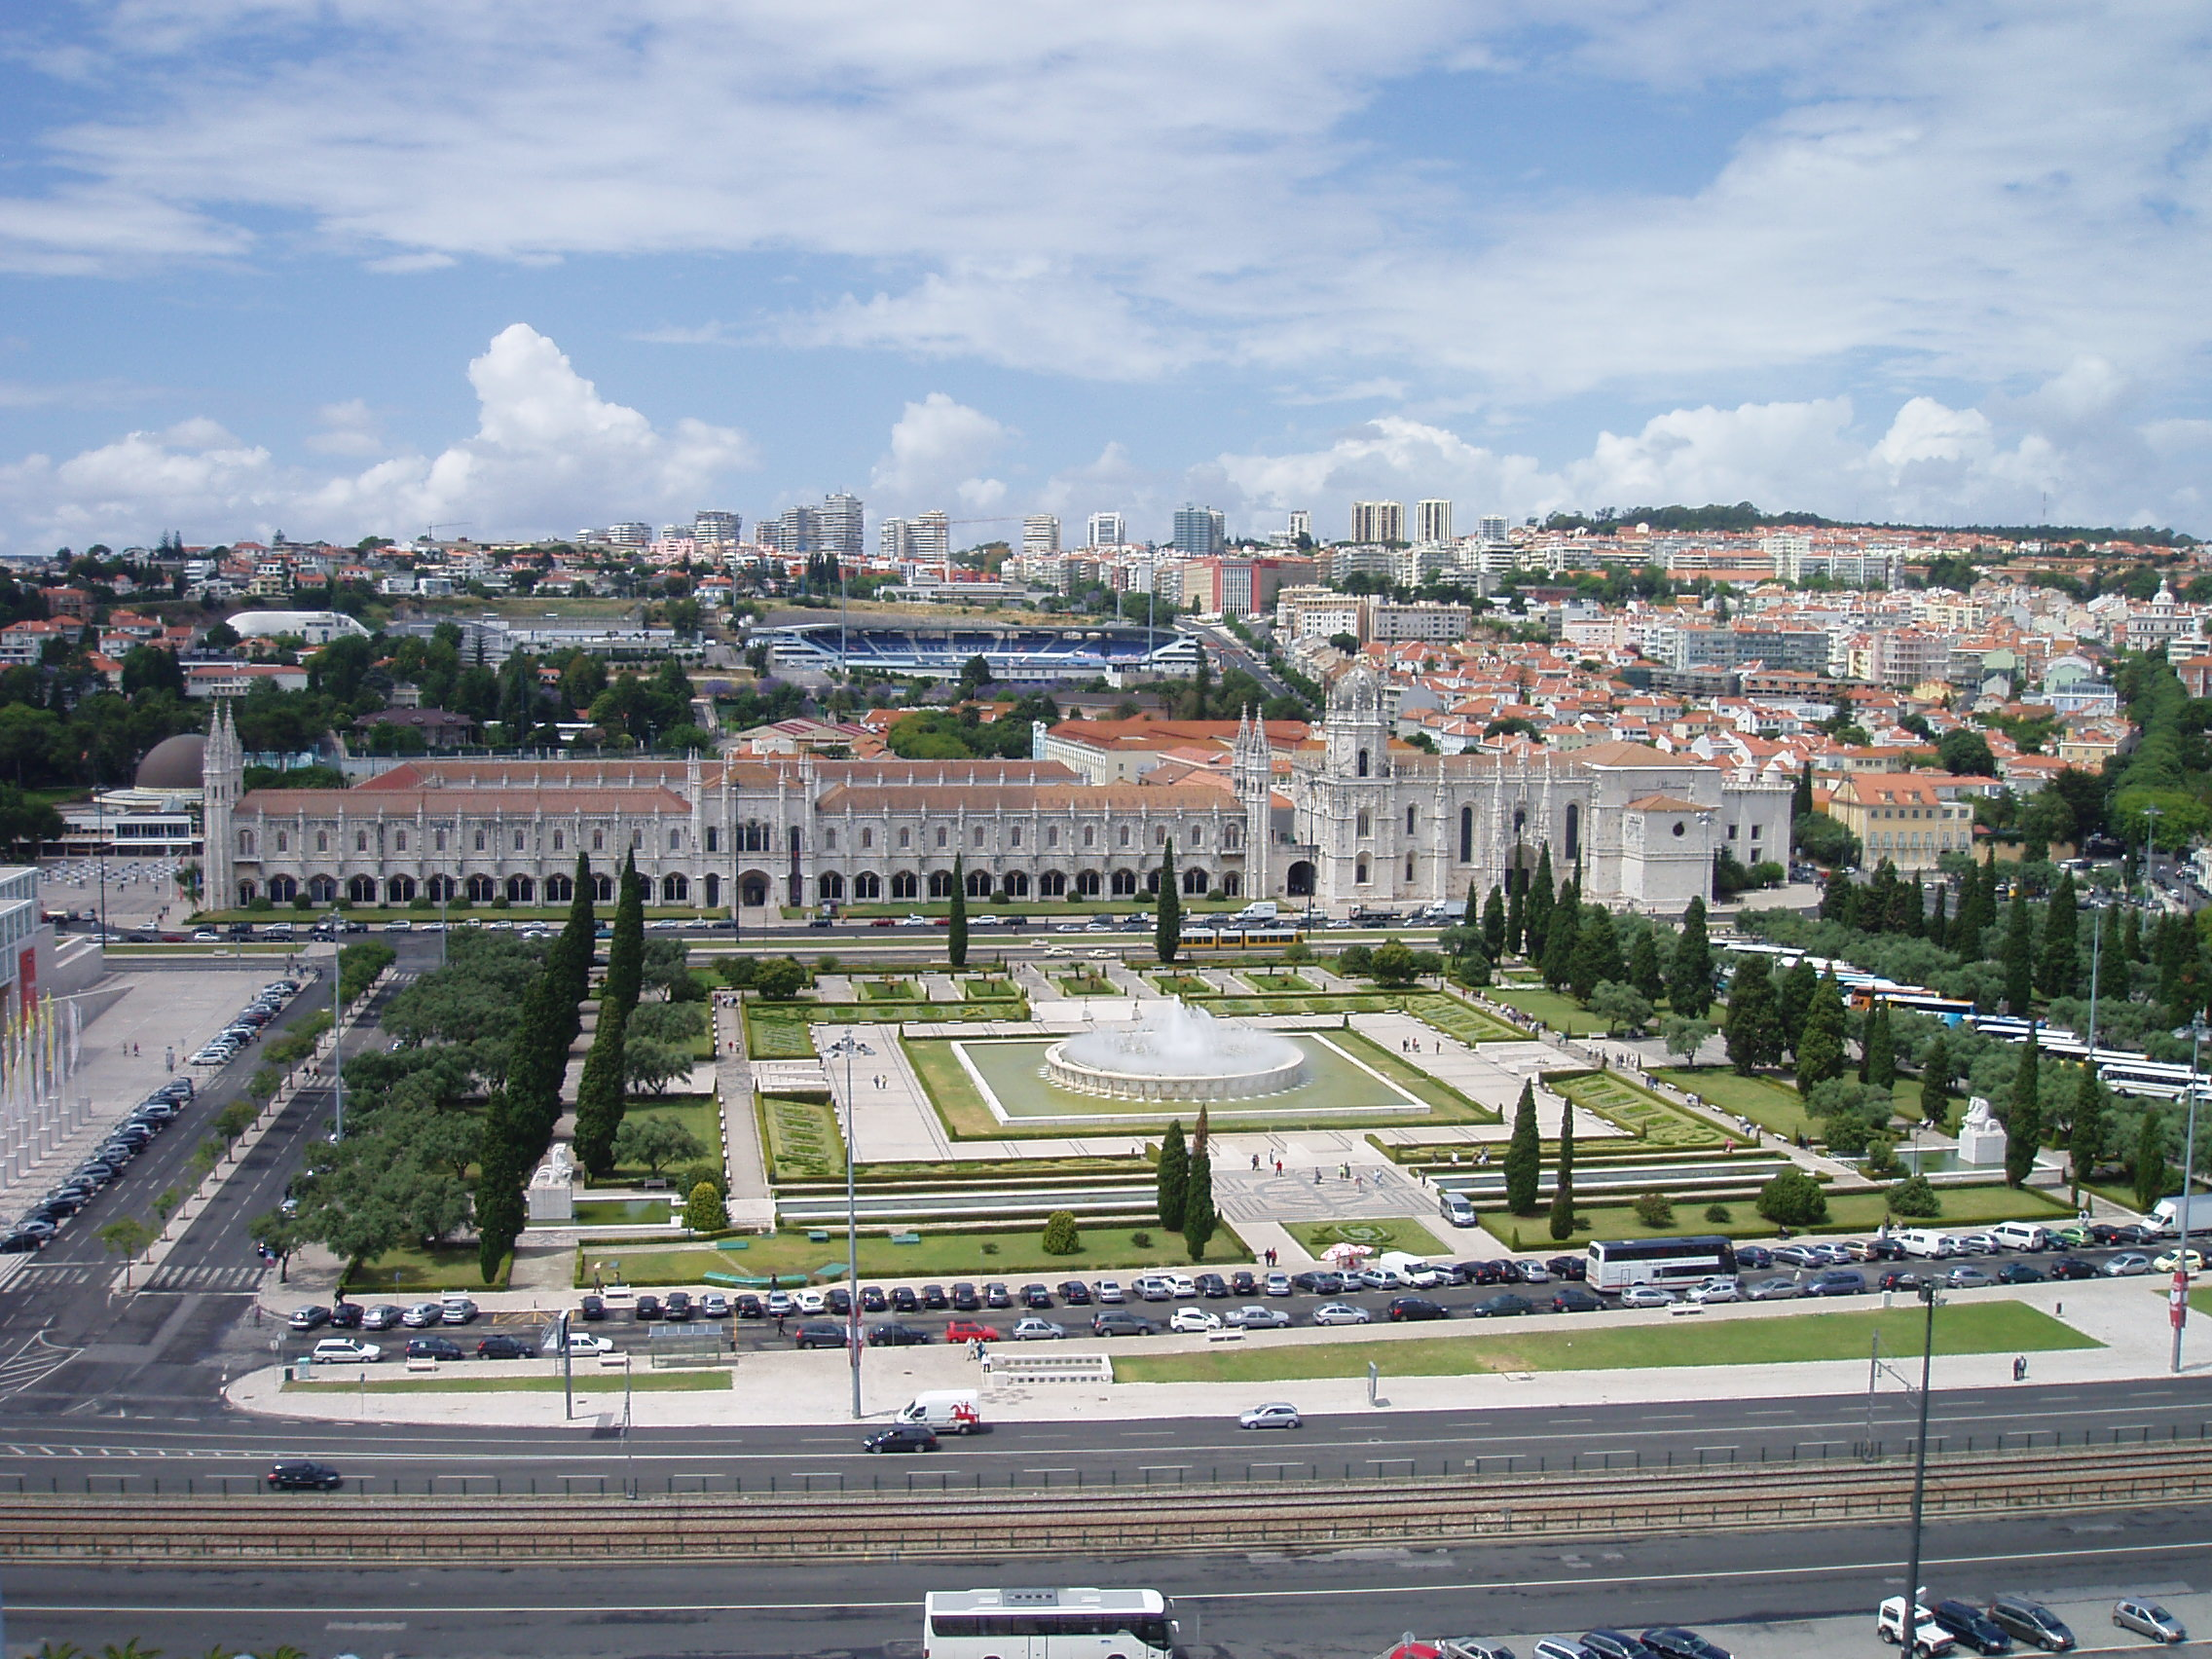 Inland_view_in_Lisbon_from_the_top_of_the_Monument_to_the_Discoveries